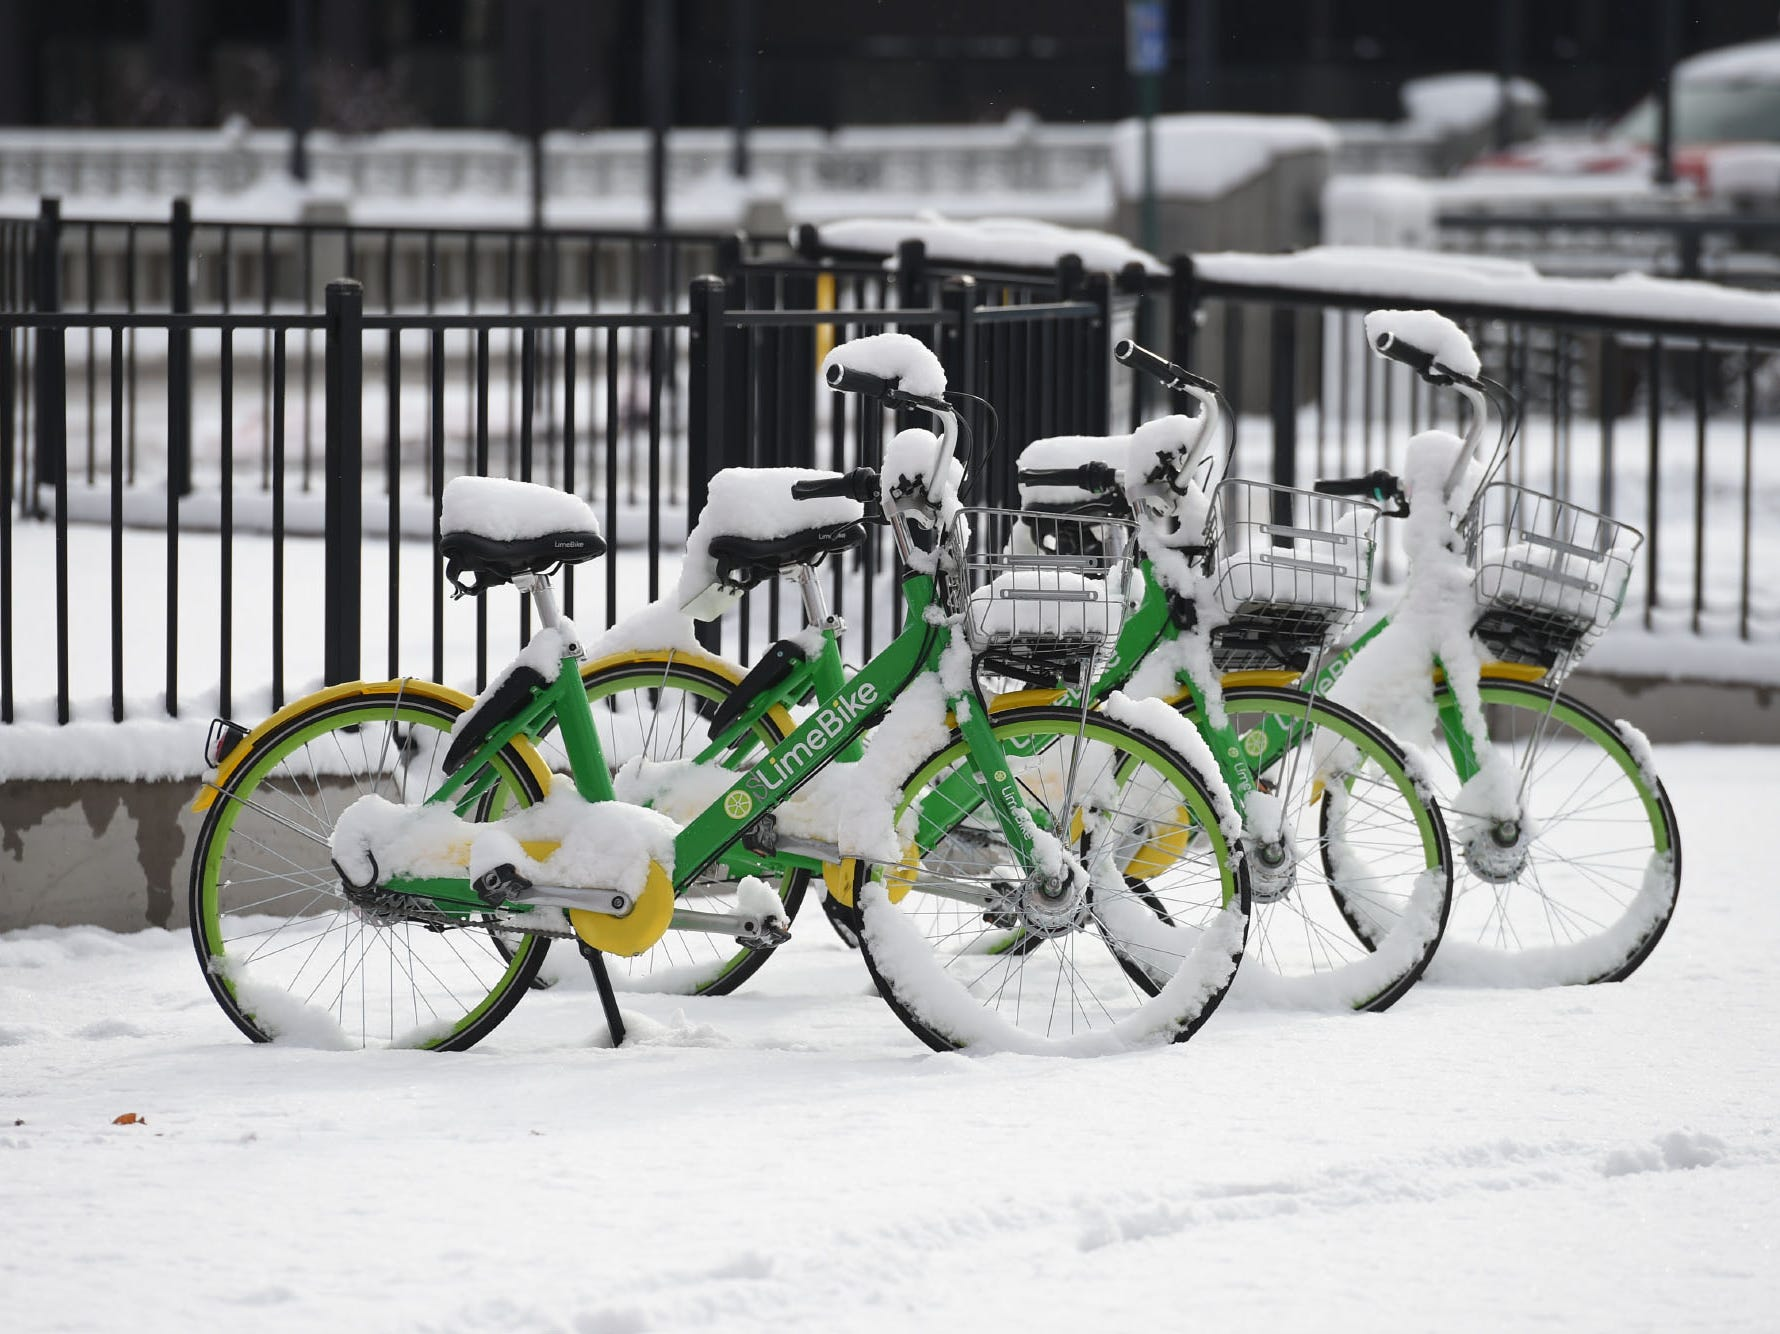 Photos from Reno's first snow day on Wednesday Dec. 5, 2018.